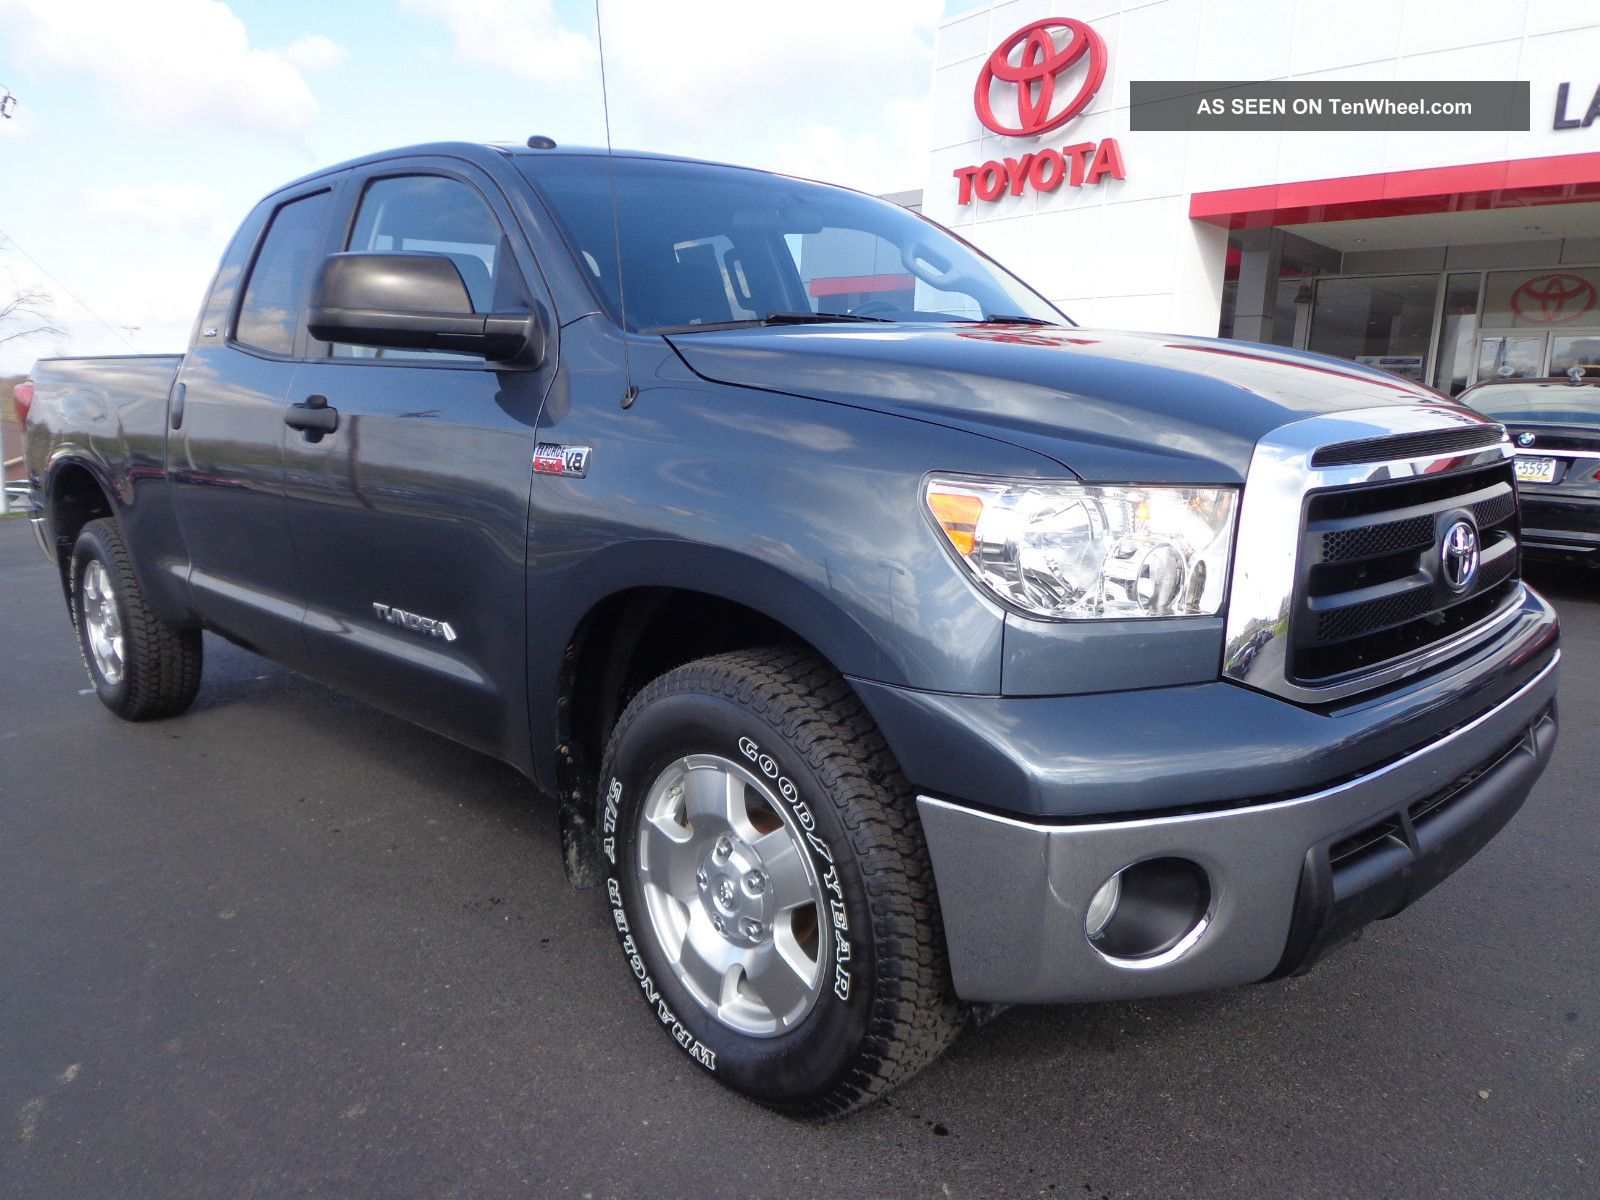 2010 Tundra Double Cab Sr5 Trd Off Road 5.  7l V8 4x4 Tow Package 1 - Owner Video Tundra photo